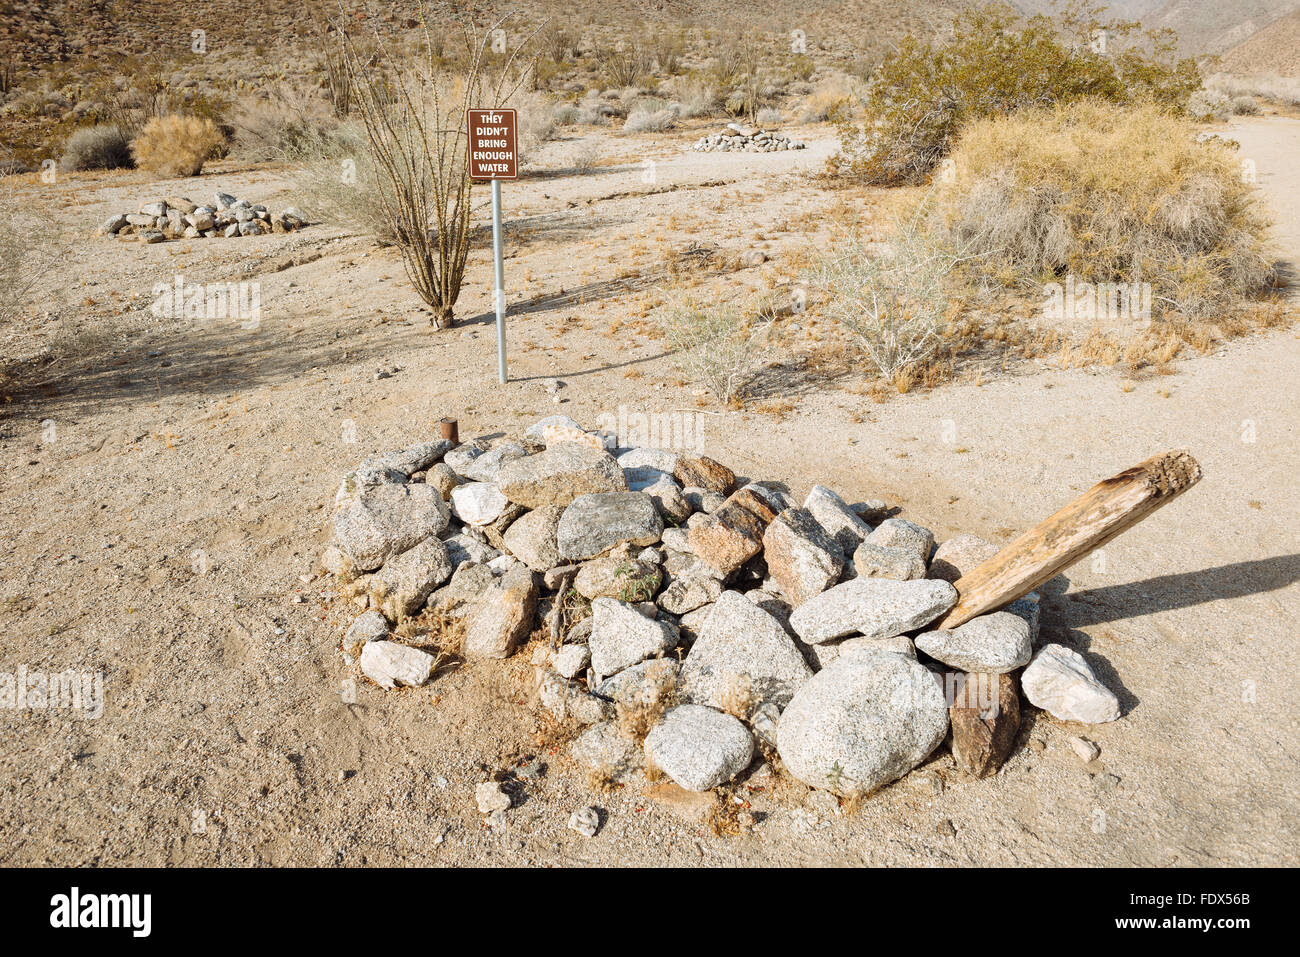 The graves of three people who died of dehydration in Anza-Borrego Desert State Park, California - Stock Image